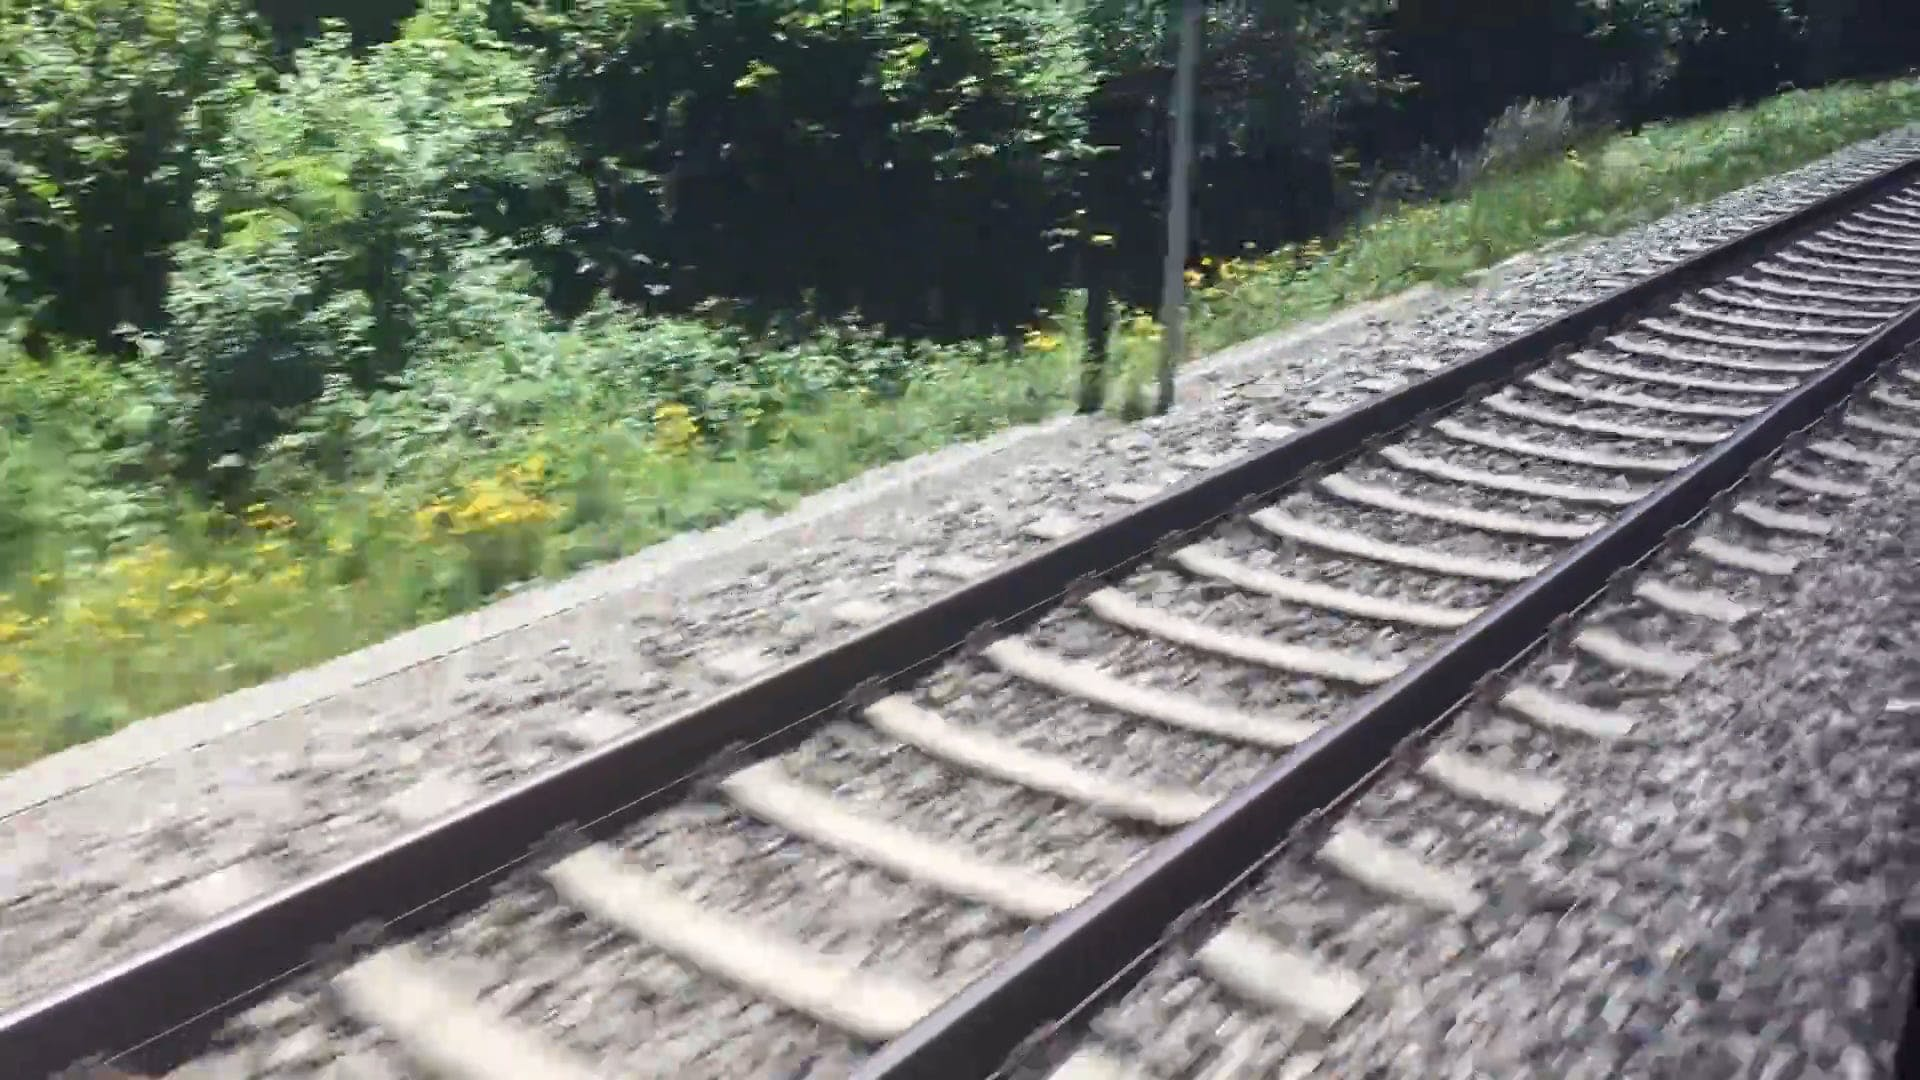 Video Footage Of A Railroad